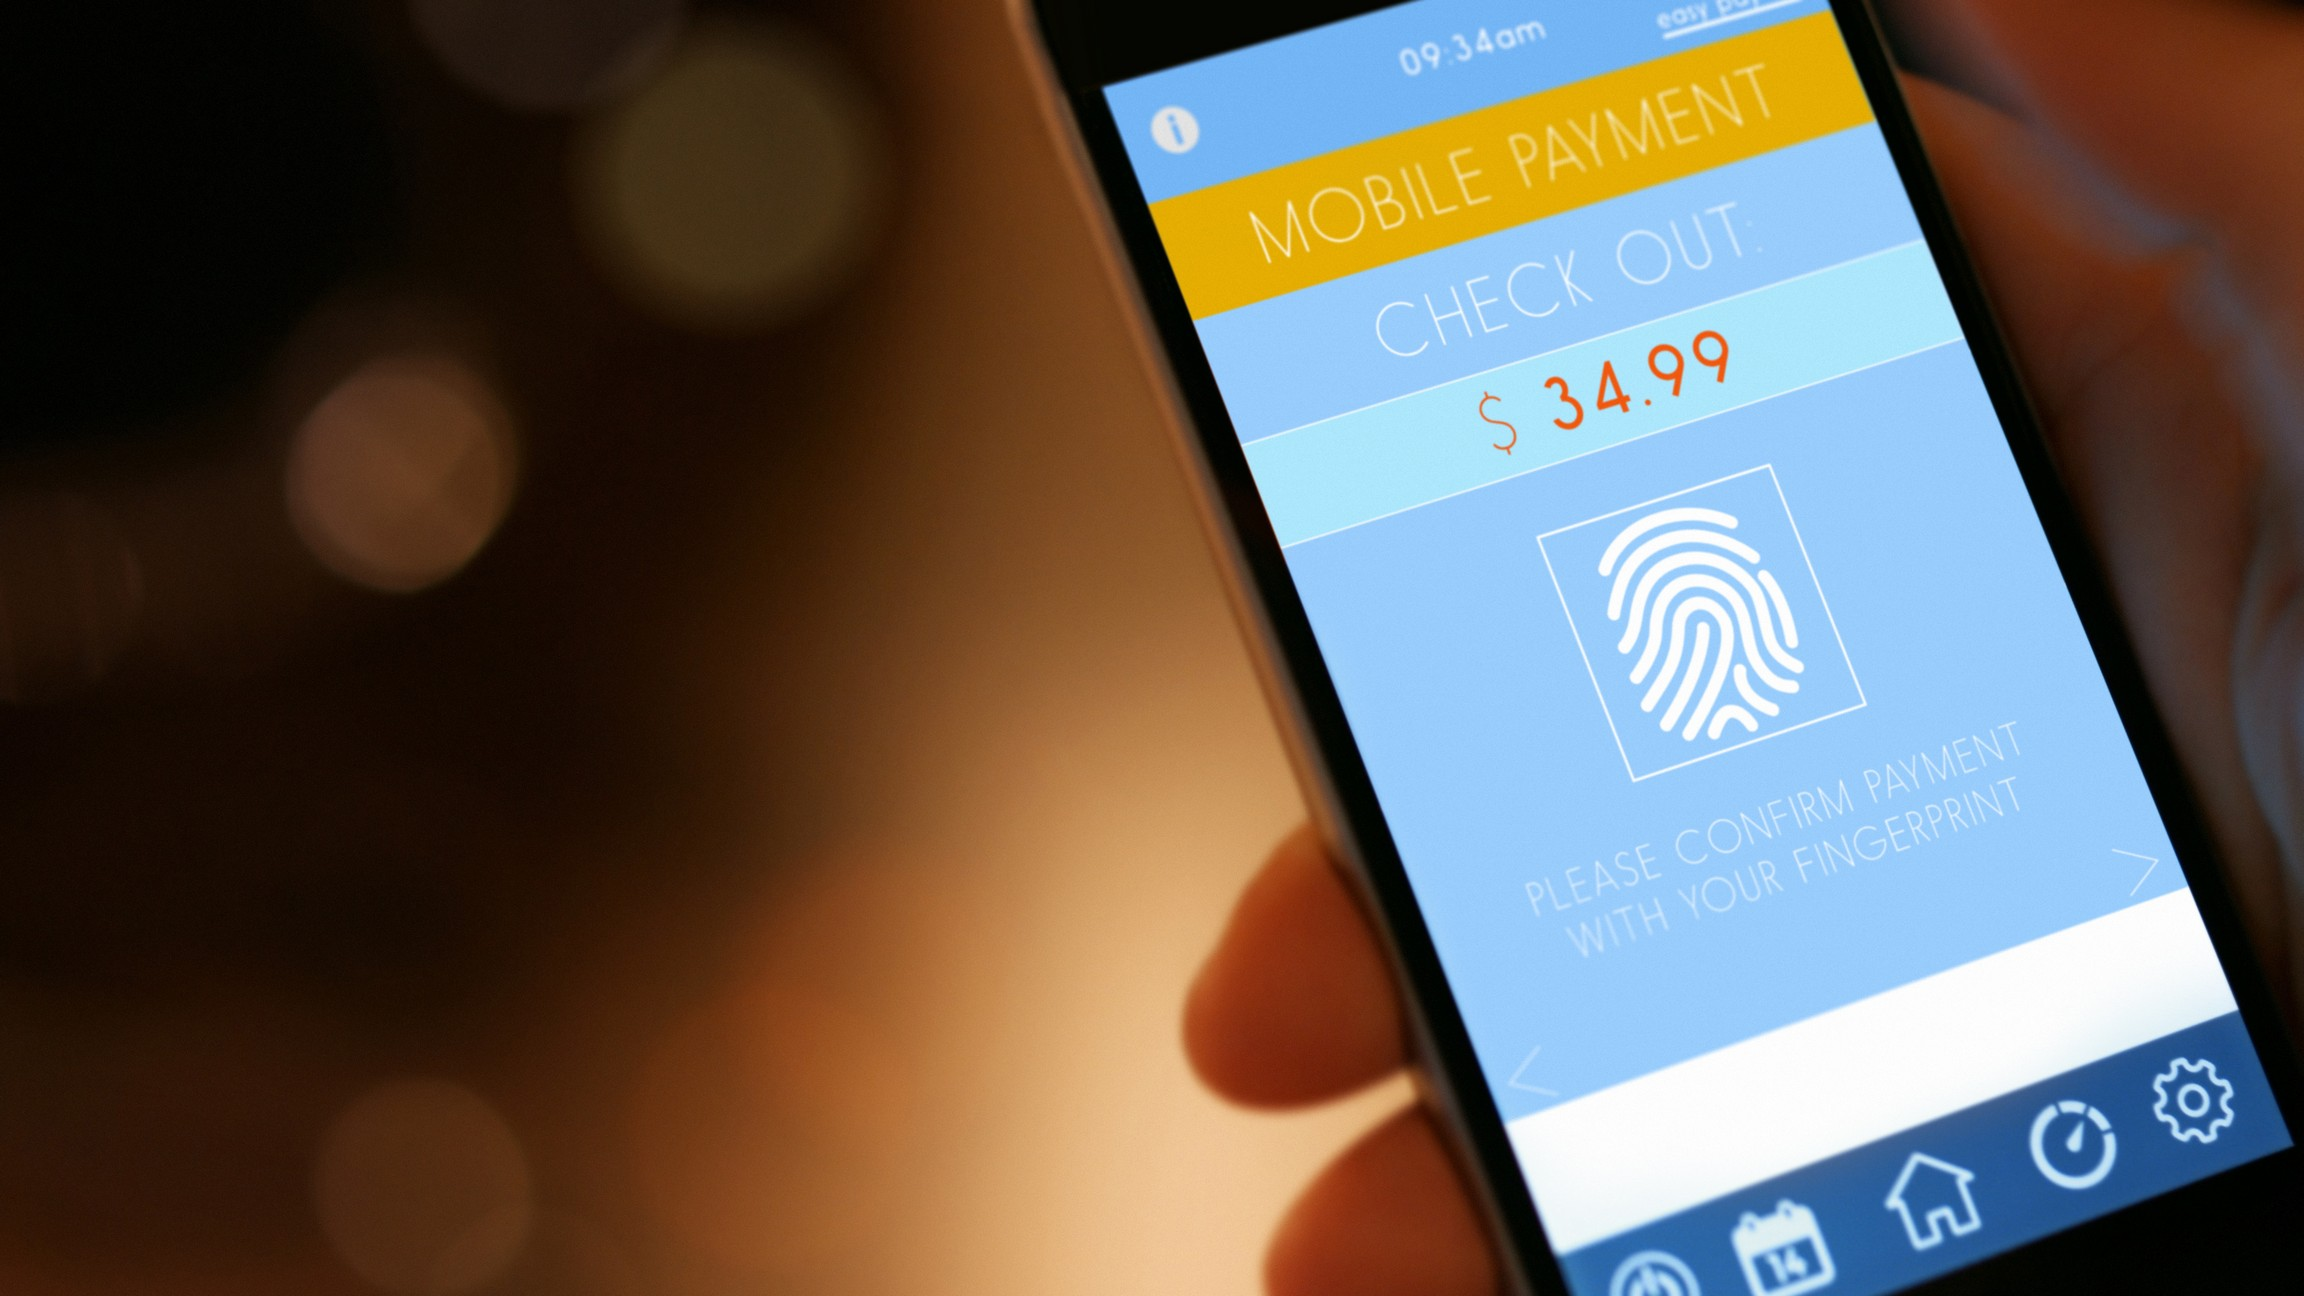 Mobile Payments in Warwick